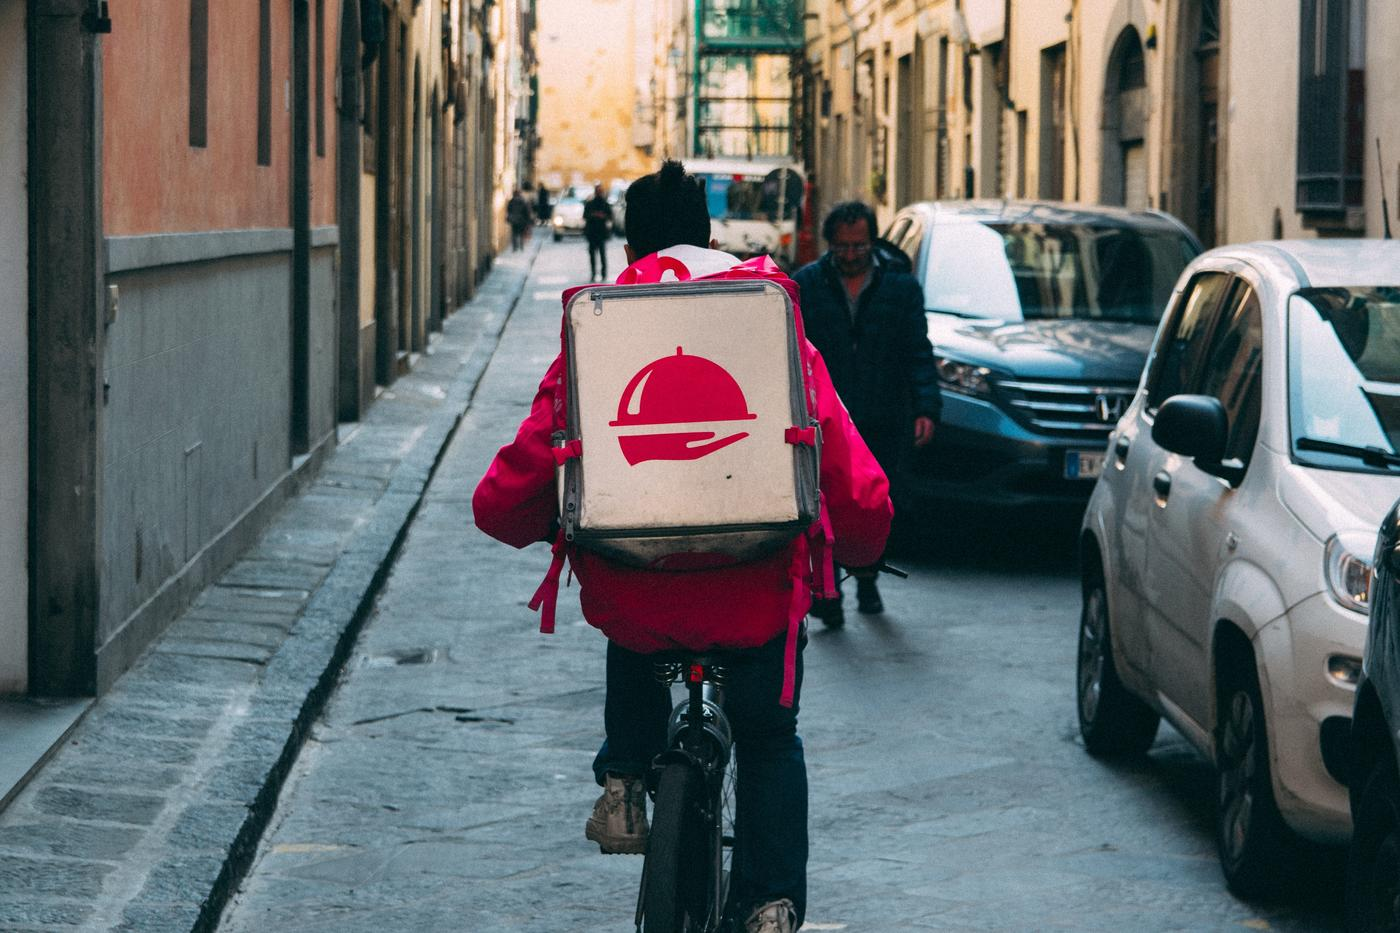 food delivery on a bike in a city